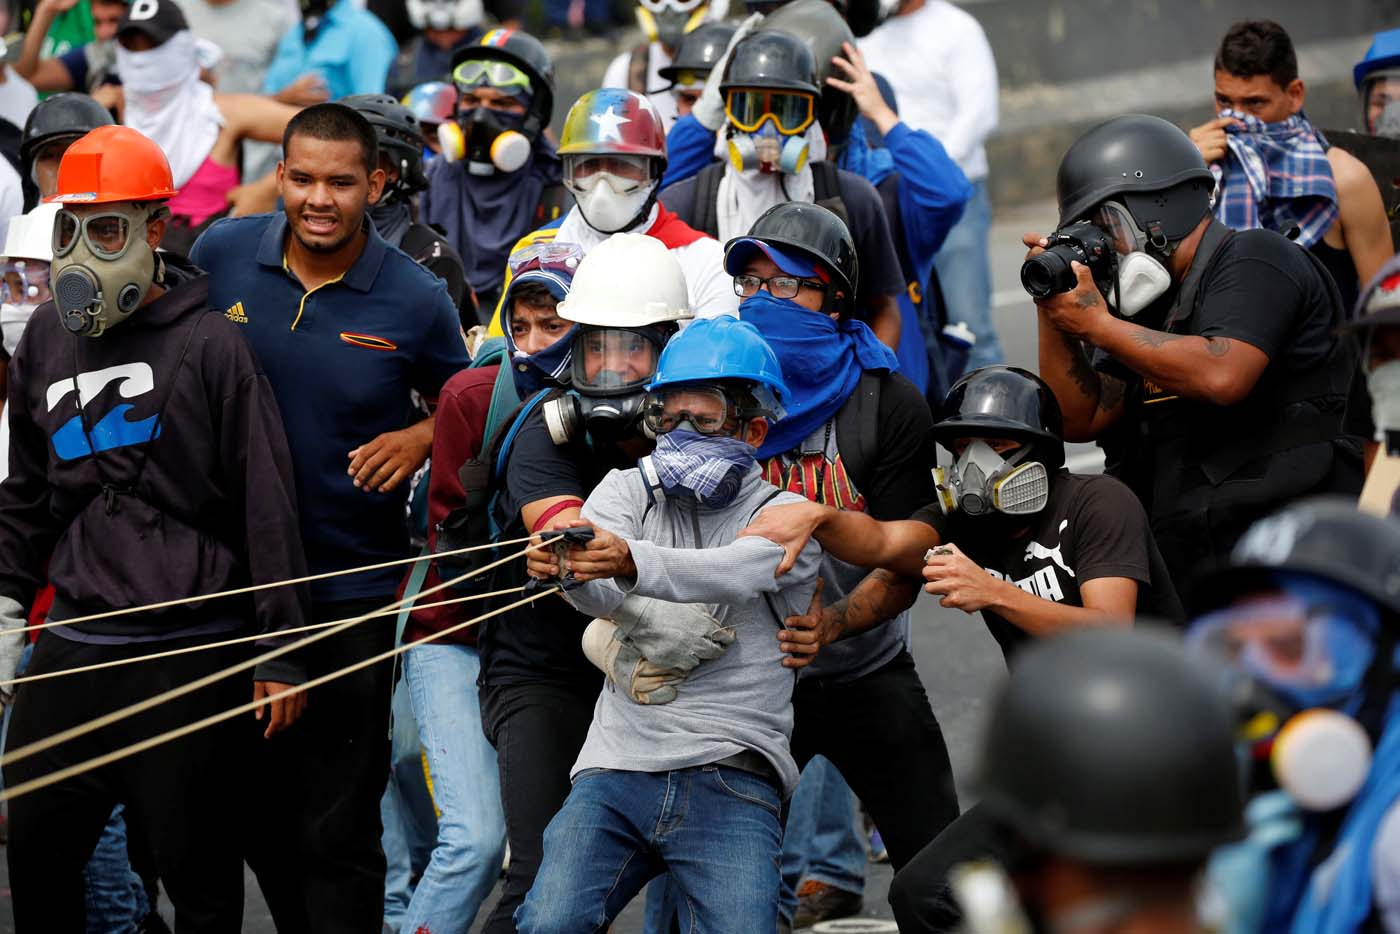 Demonstrators use a giant sling shot while clashing with riot security forces during a rally against President Nicolas Maduro in Caracas, Venezuela, May 24, 2017. REUTERS/Carlos Garcia Rawlins